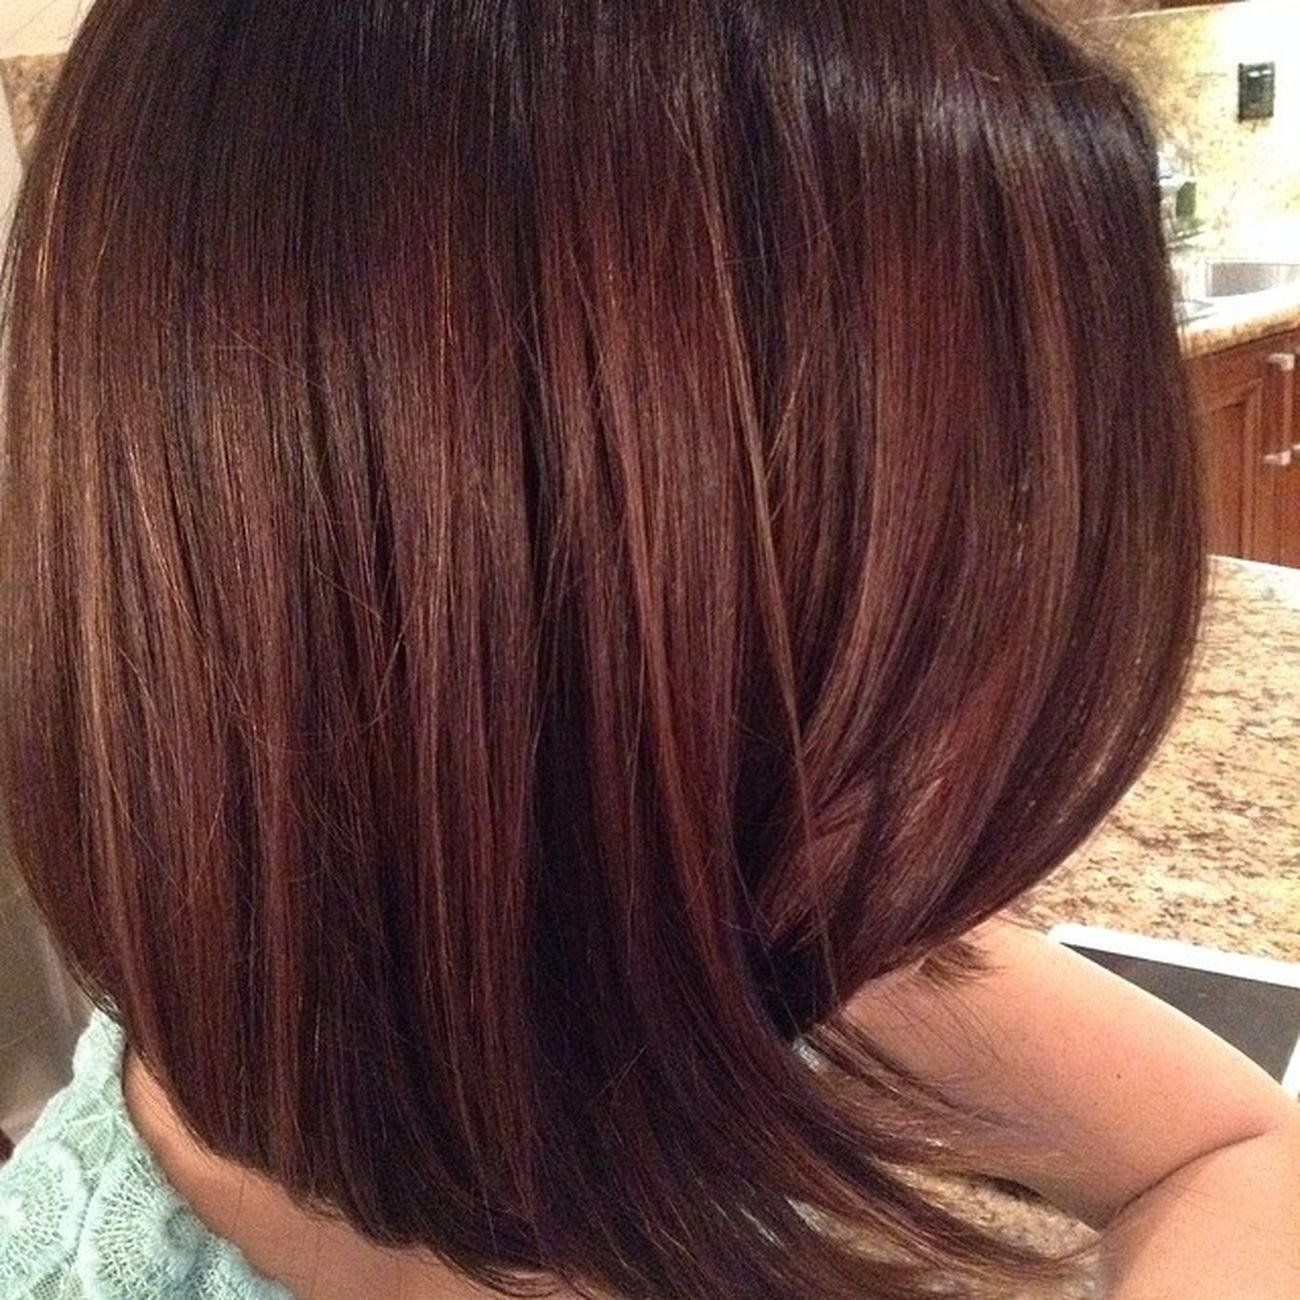 HairInTheKitchen I love Carla's @AloxxiHair Color 3N15Vol